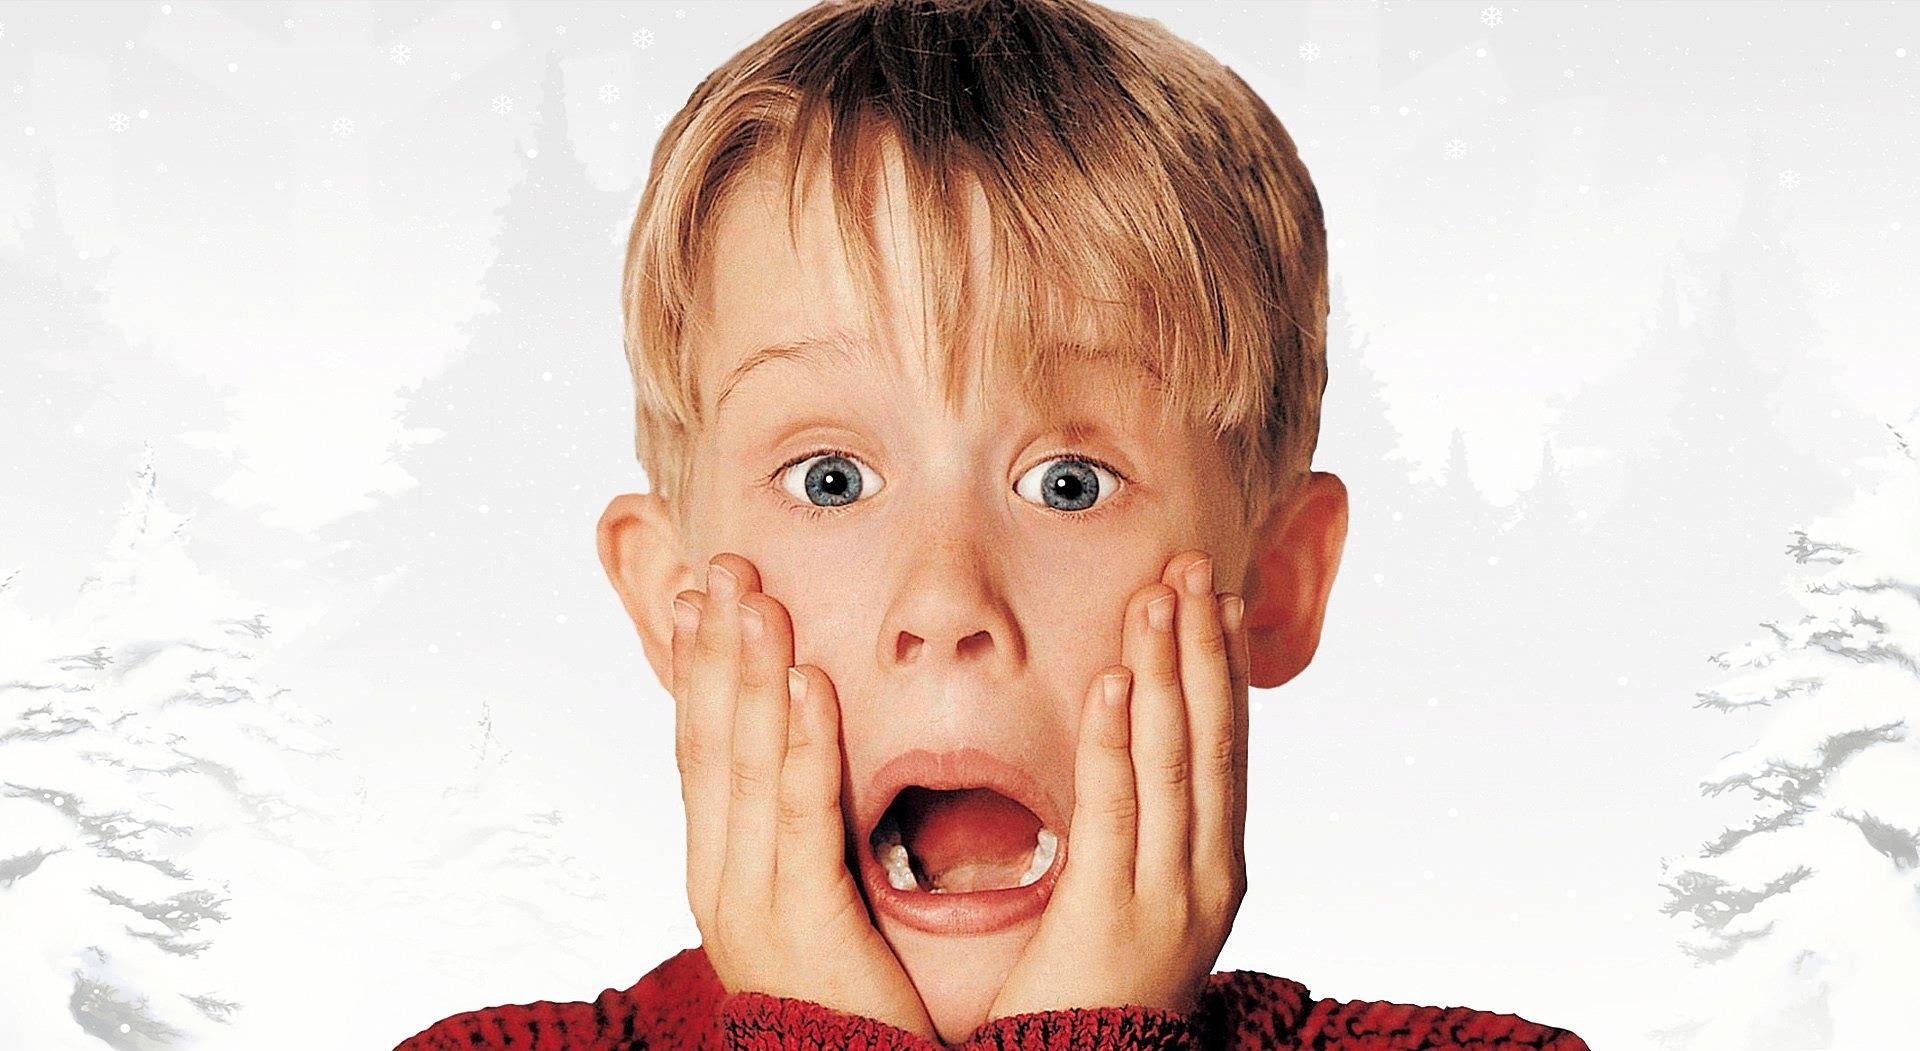 Macauley Culkin stars as Kevin McCallister in Home Alone